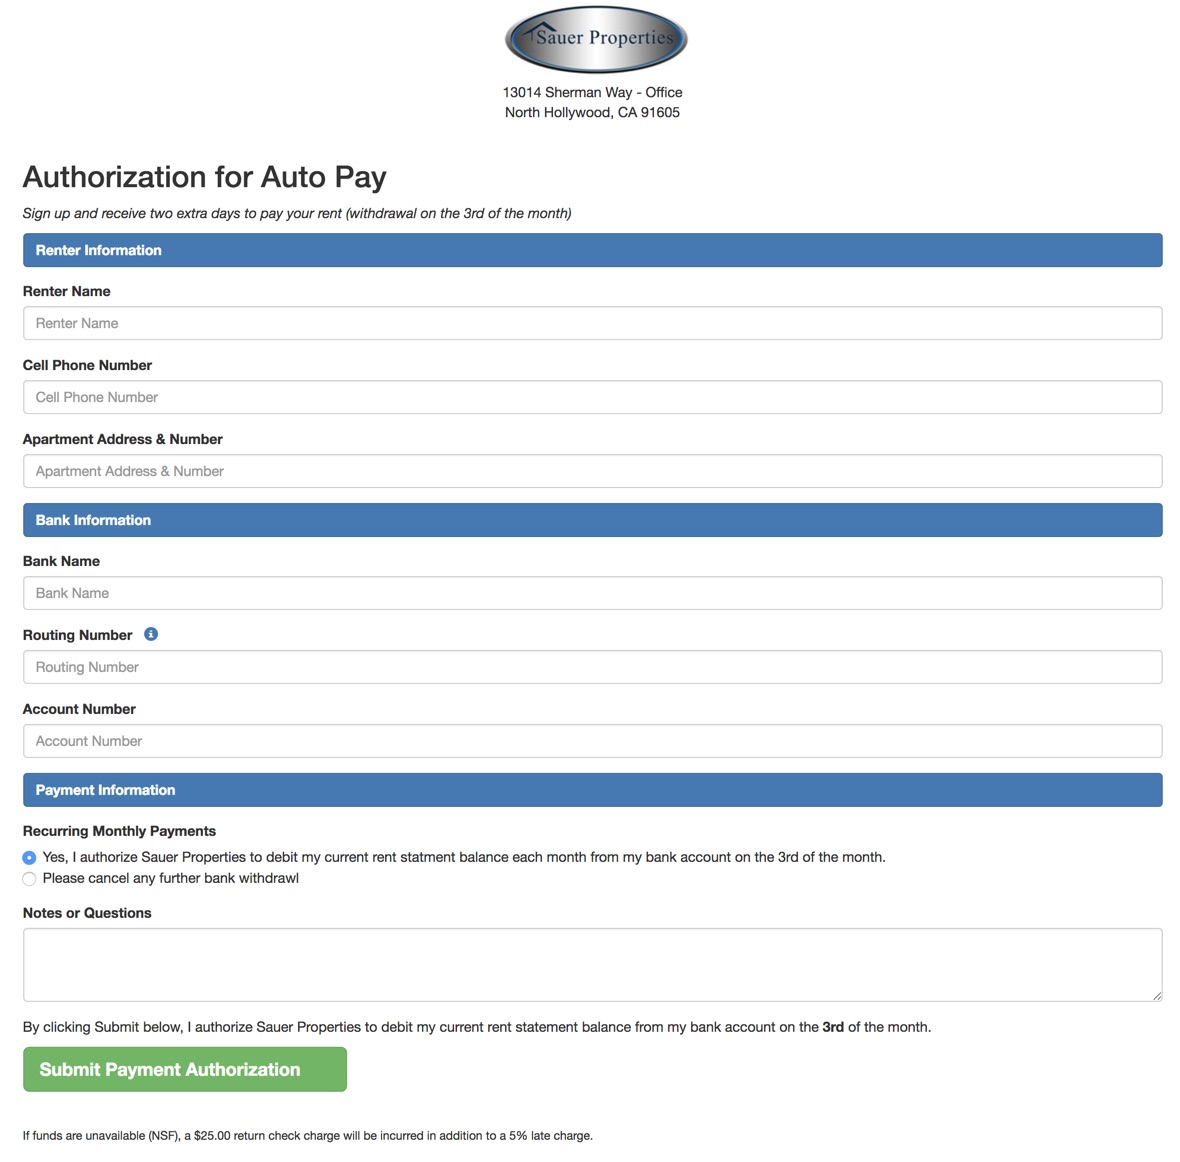 Sauer Properties FileMaker Residential Rental Property Mangement -- Authorization Page